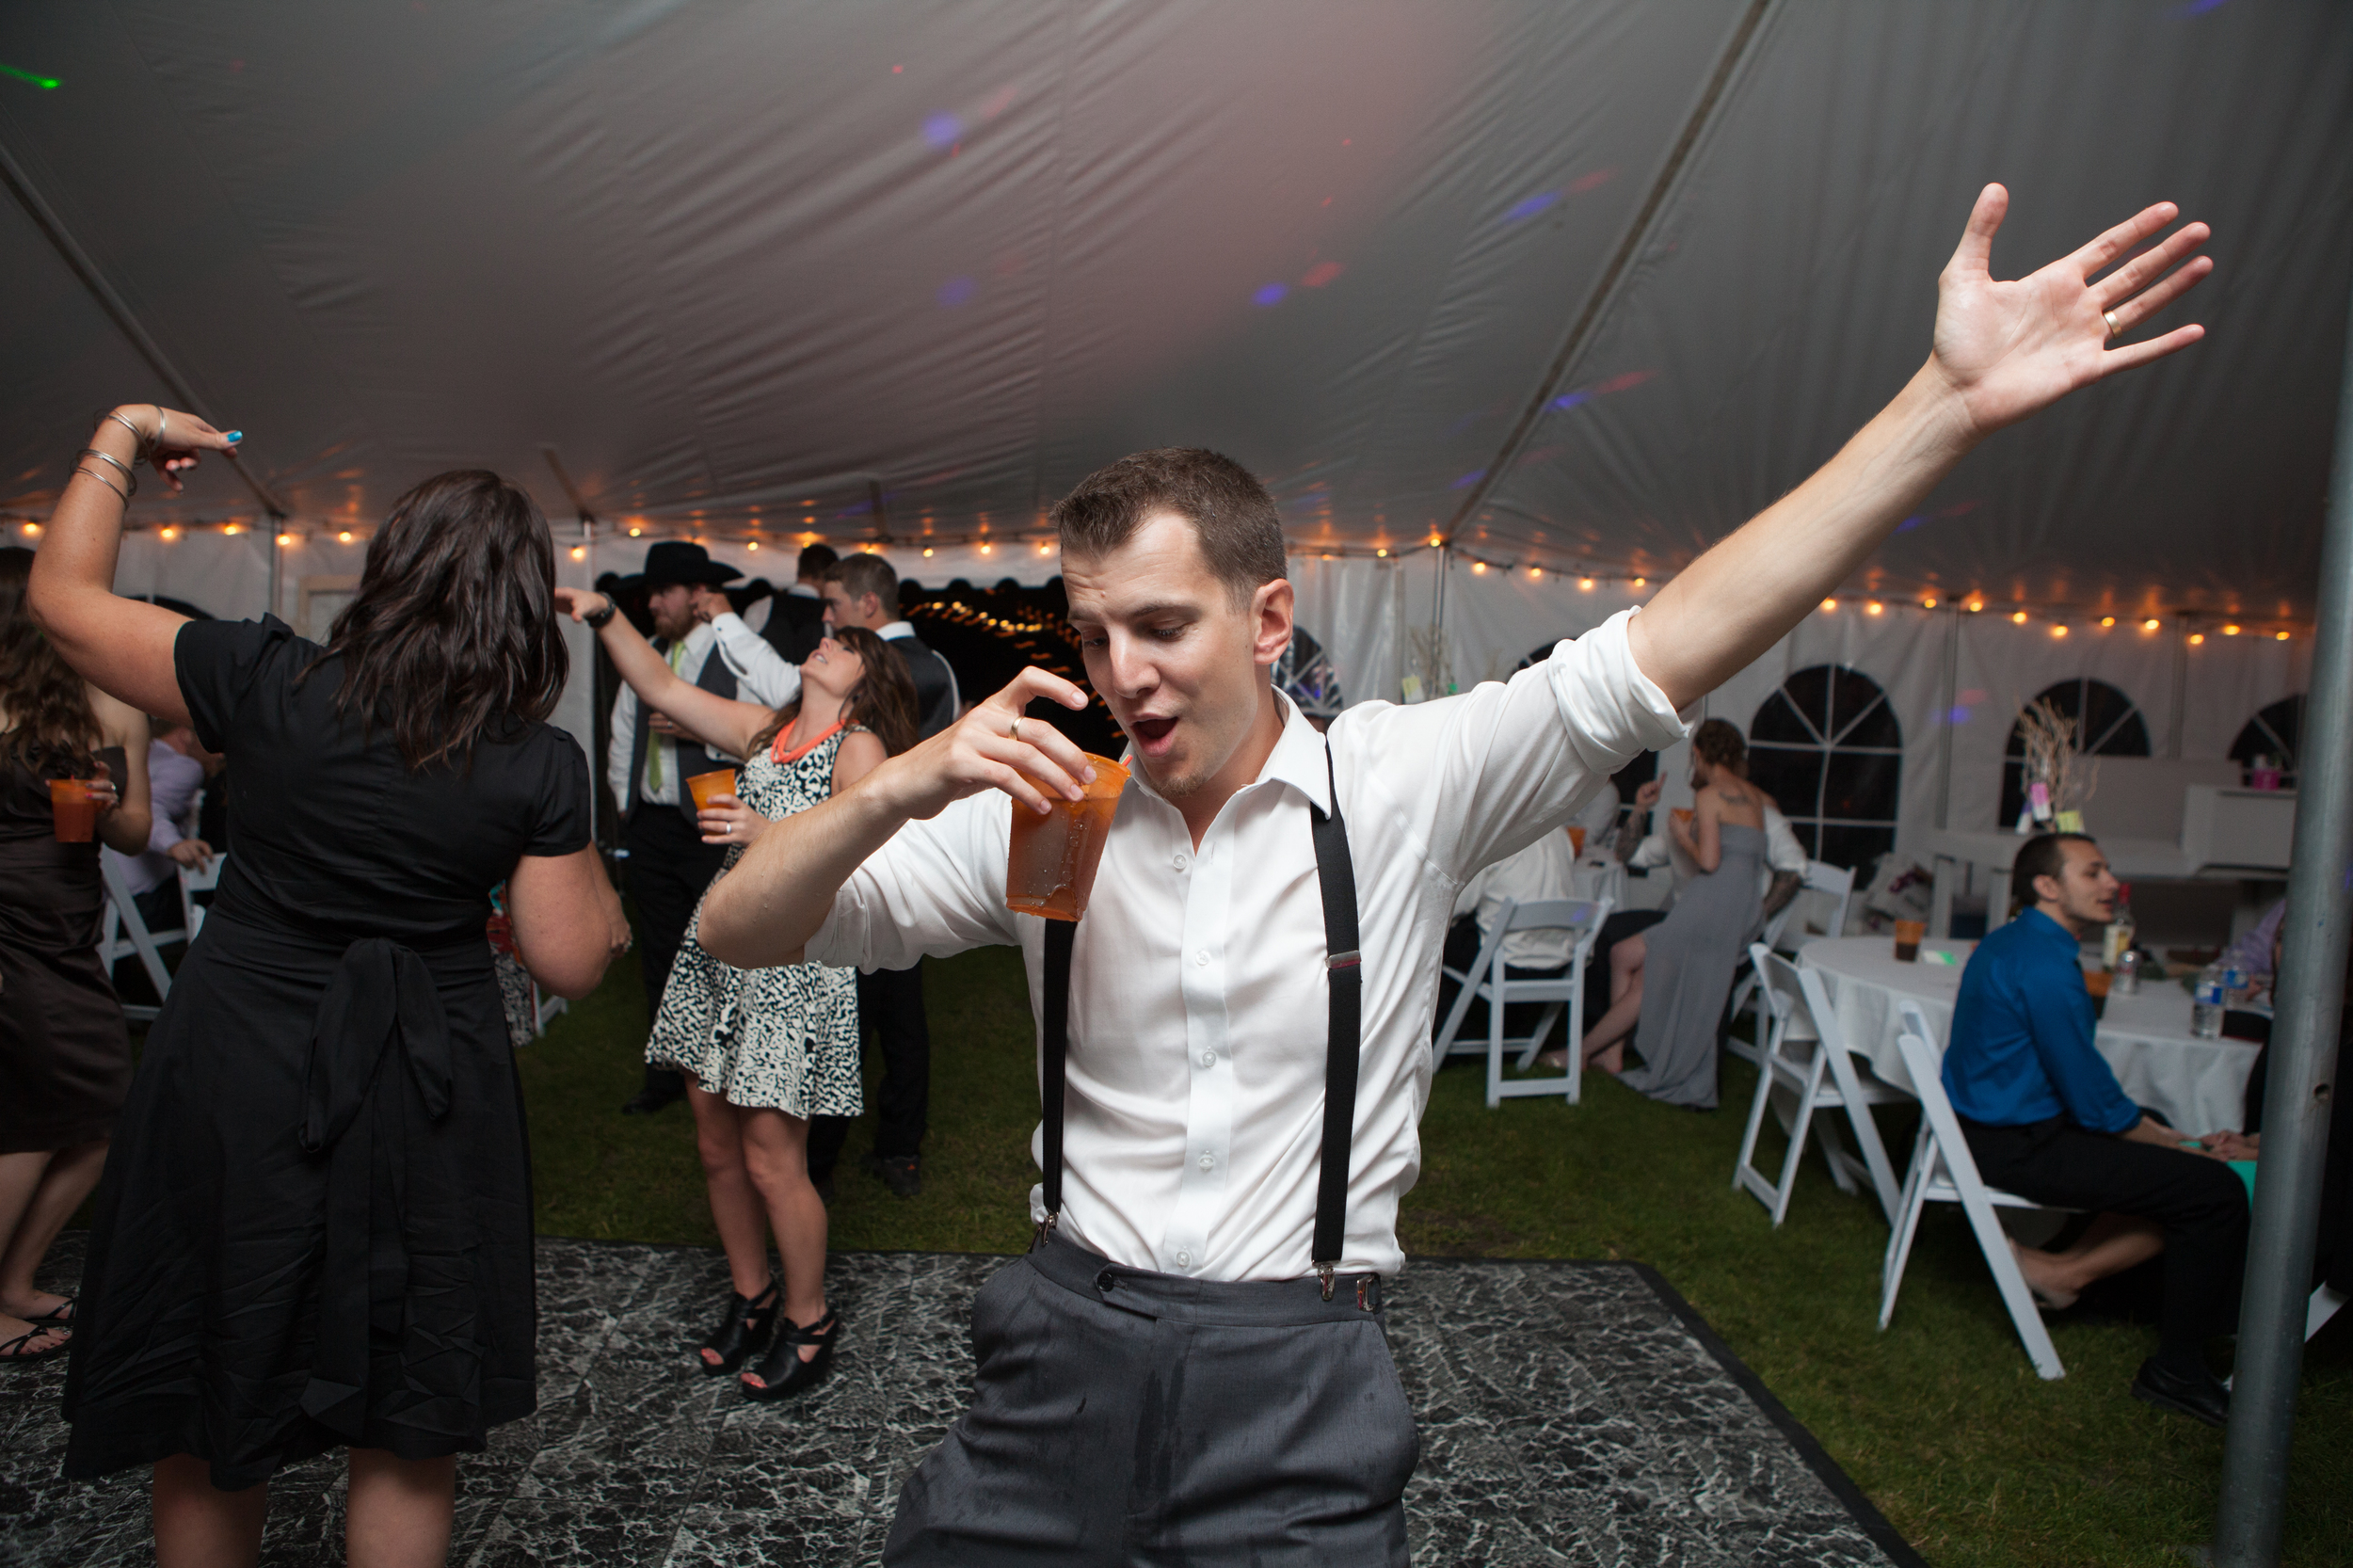 james wedding (1299 of 1386).jpg